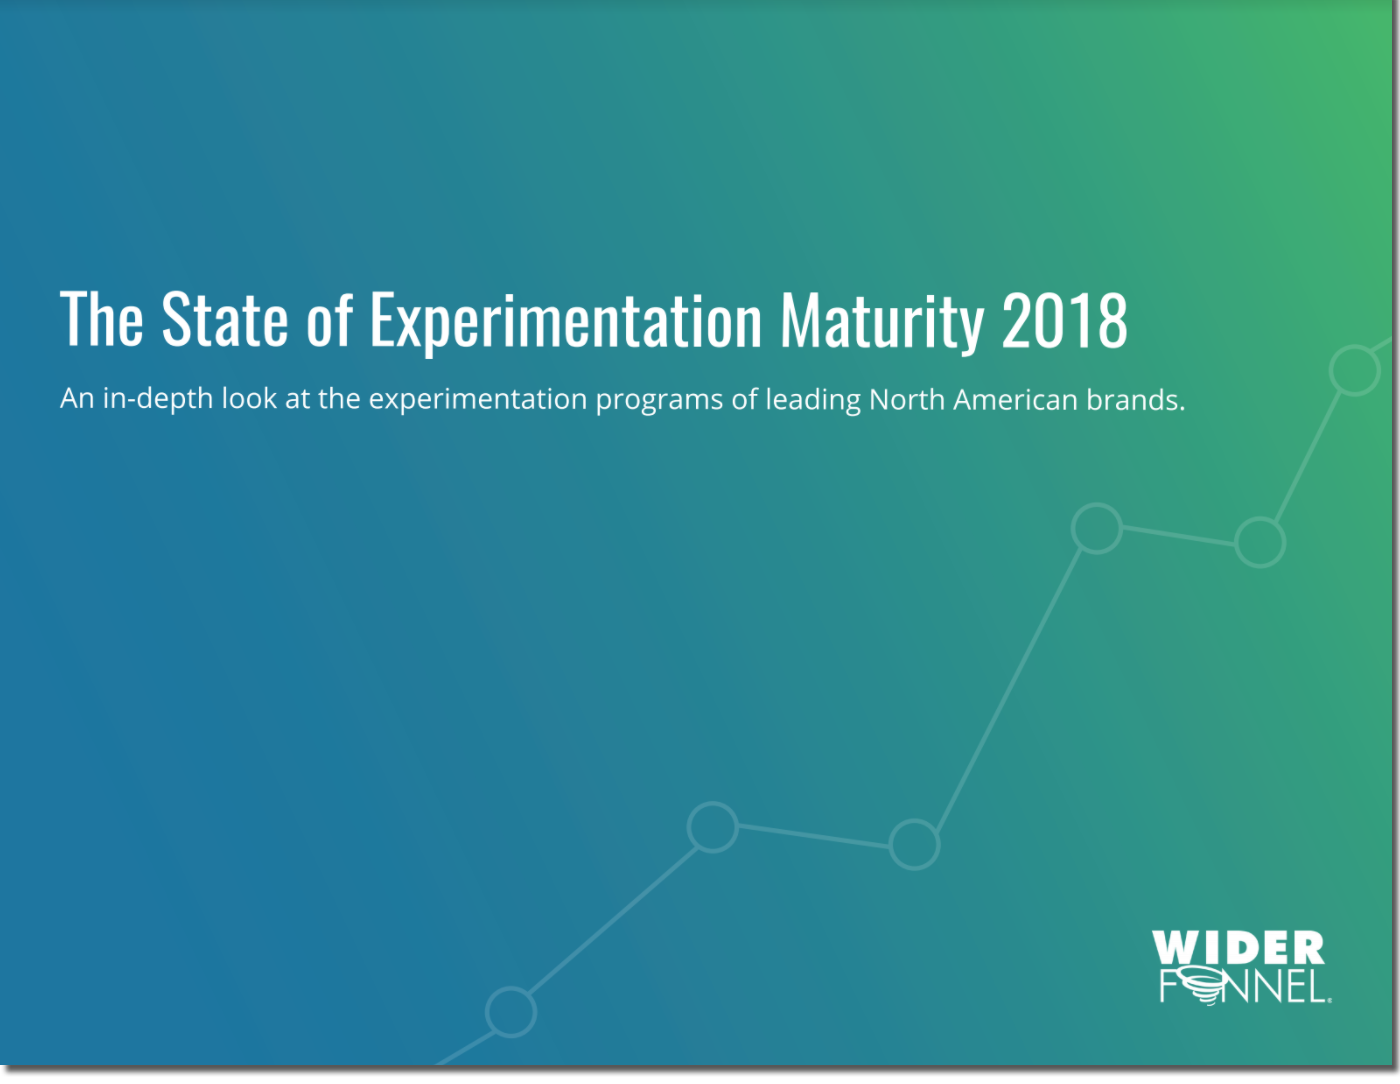 The State of Experimentation Maturity 2018